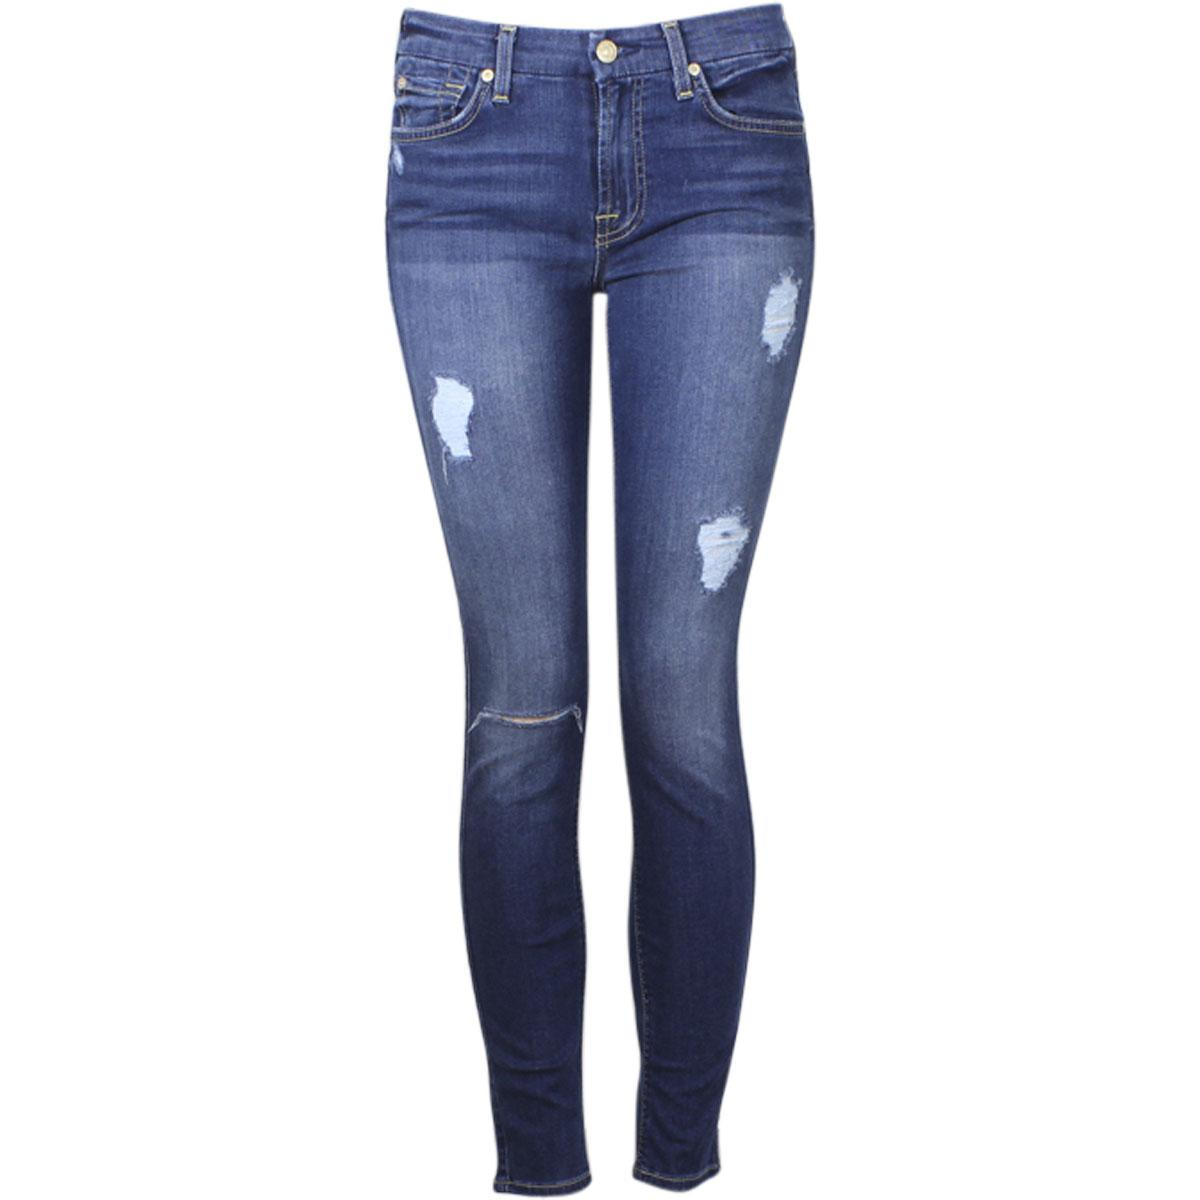 Image of 7 For All Mankind Women's The Ankle Skinny With Destroy (B)Air Denim Jeans - Blue - 29 (7/8)